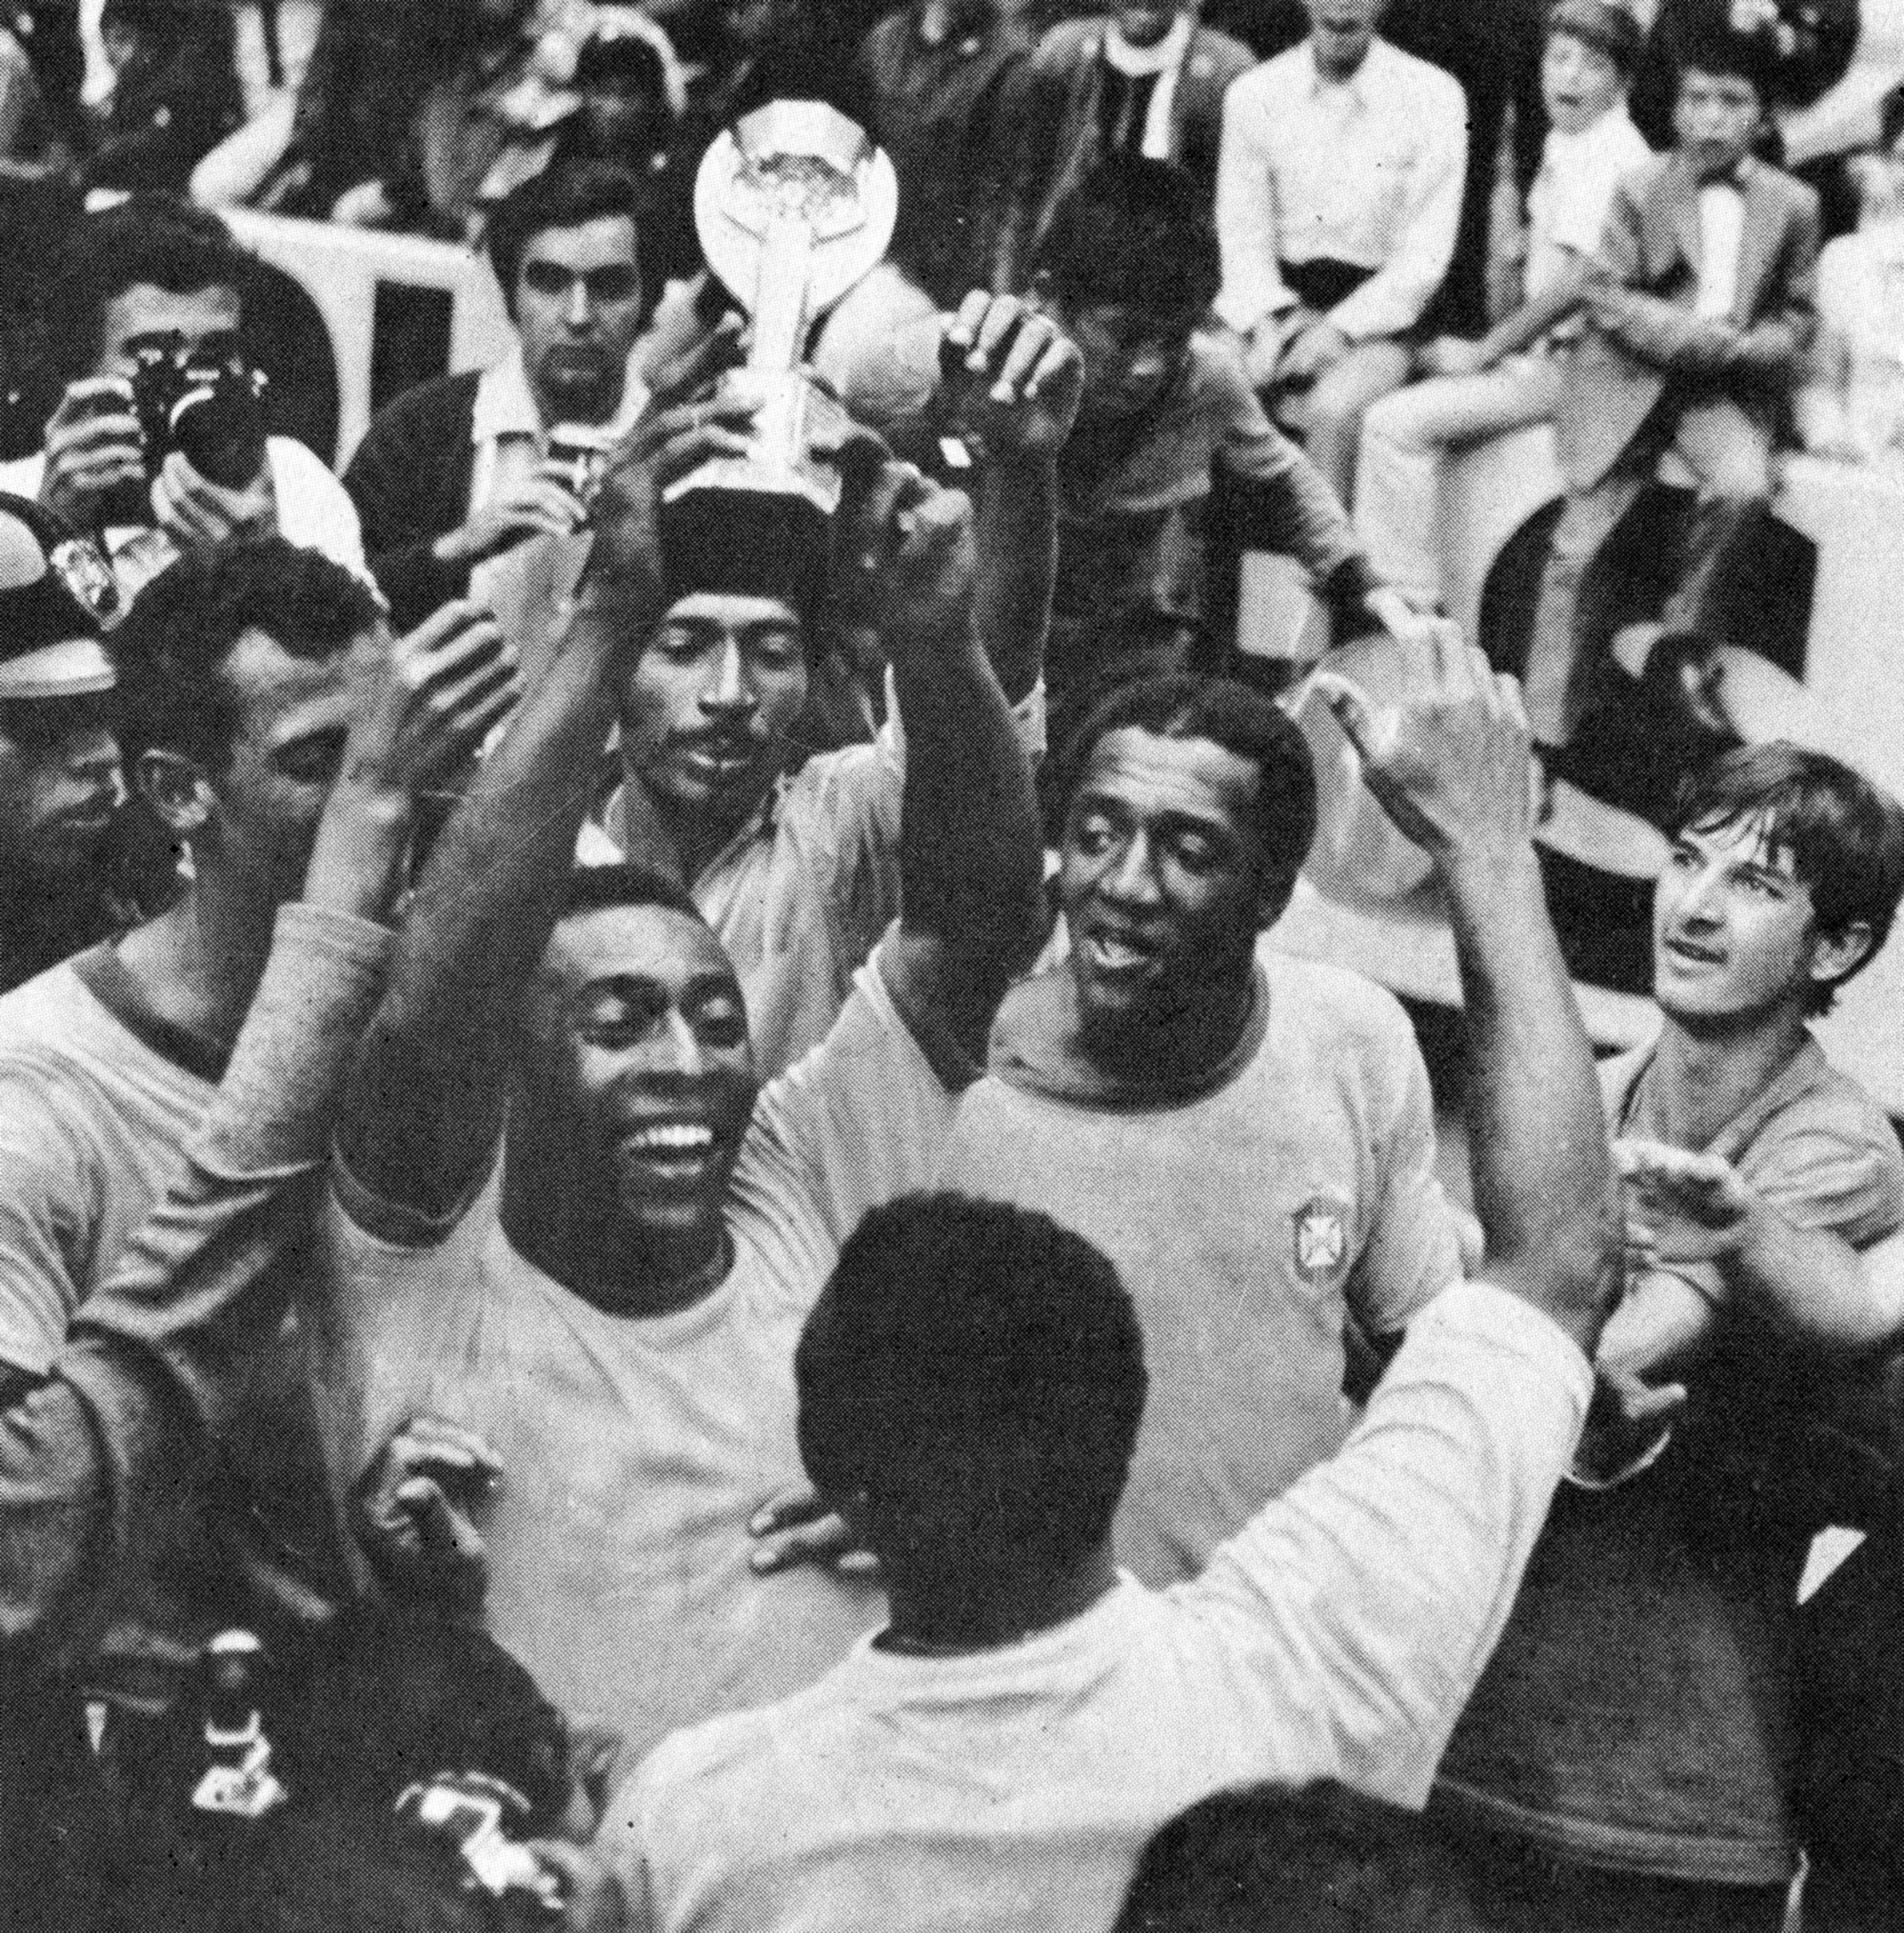 Football Fifa Mexico 1970 World Cup Final Brazil vs Italy 4-1 Pelè celebrates with the cup